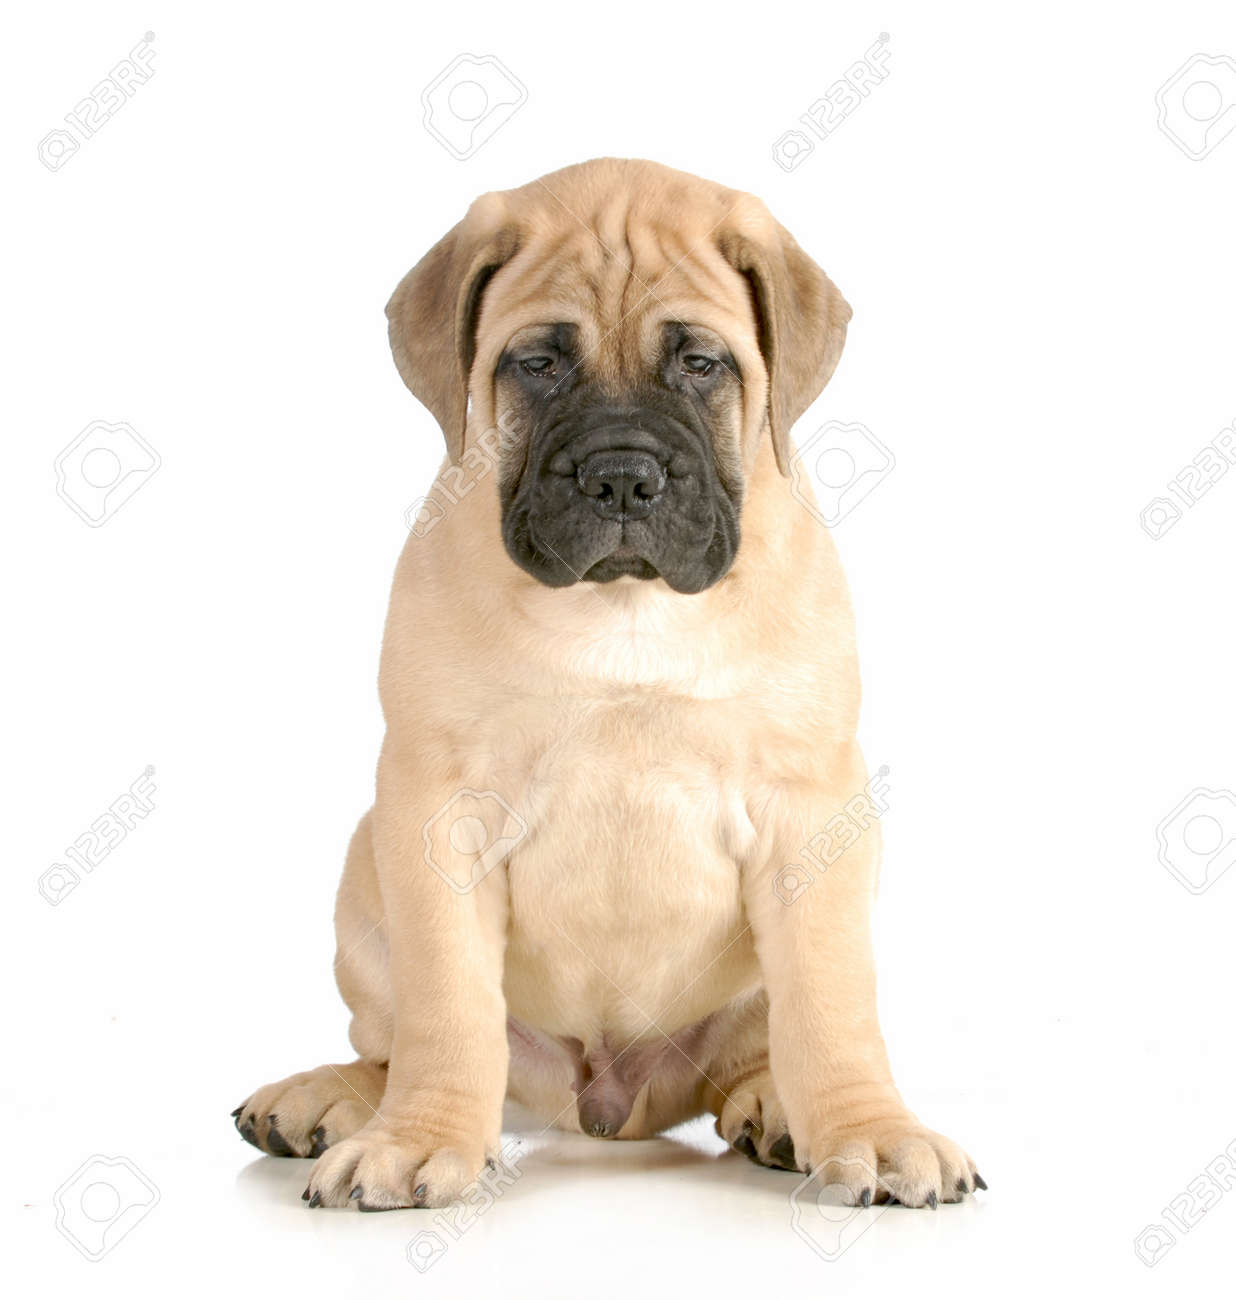 Bullmastiff Puppy Sitting Looking At Viewer Isolated On White